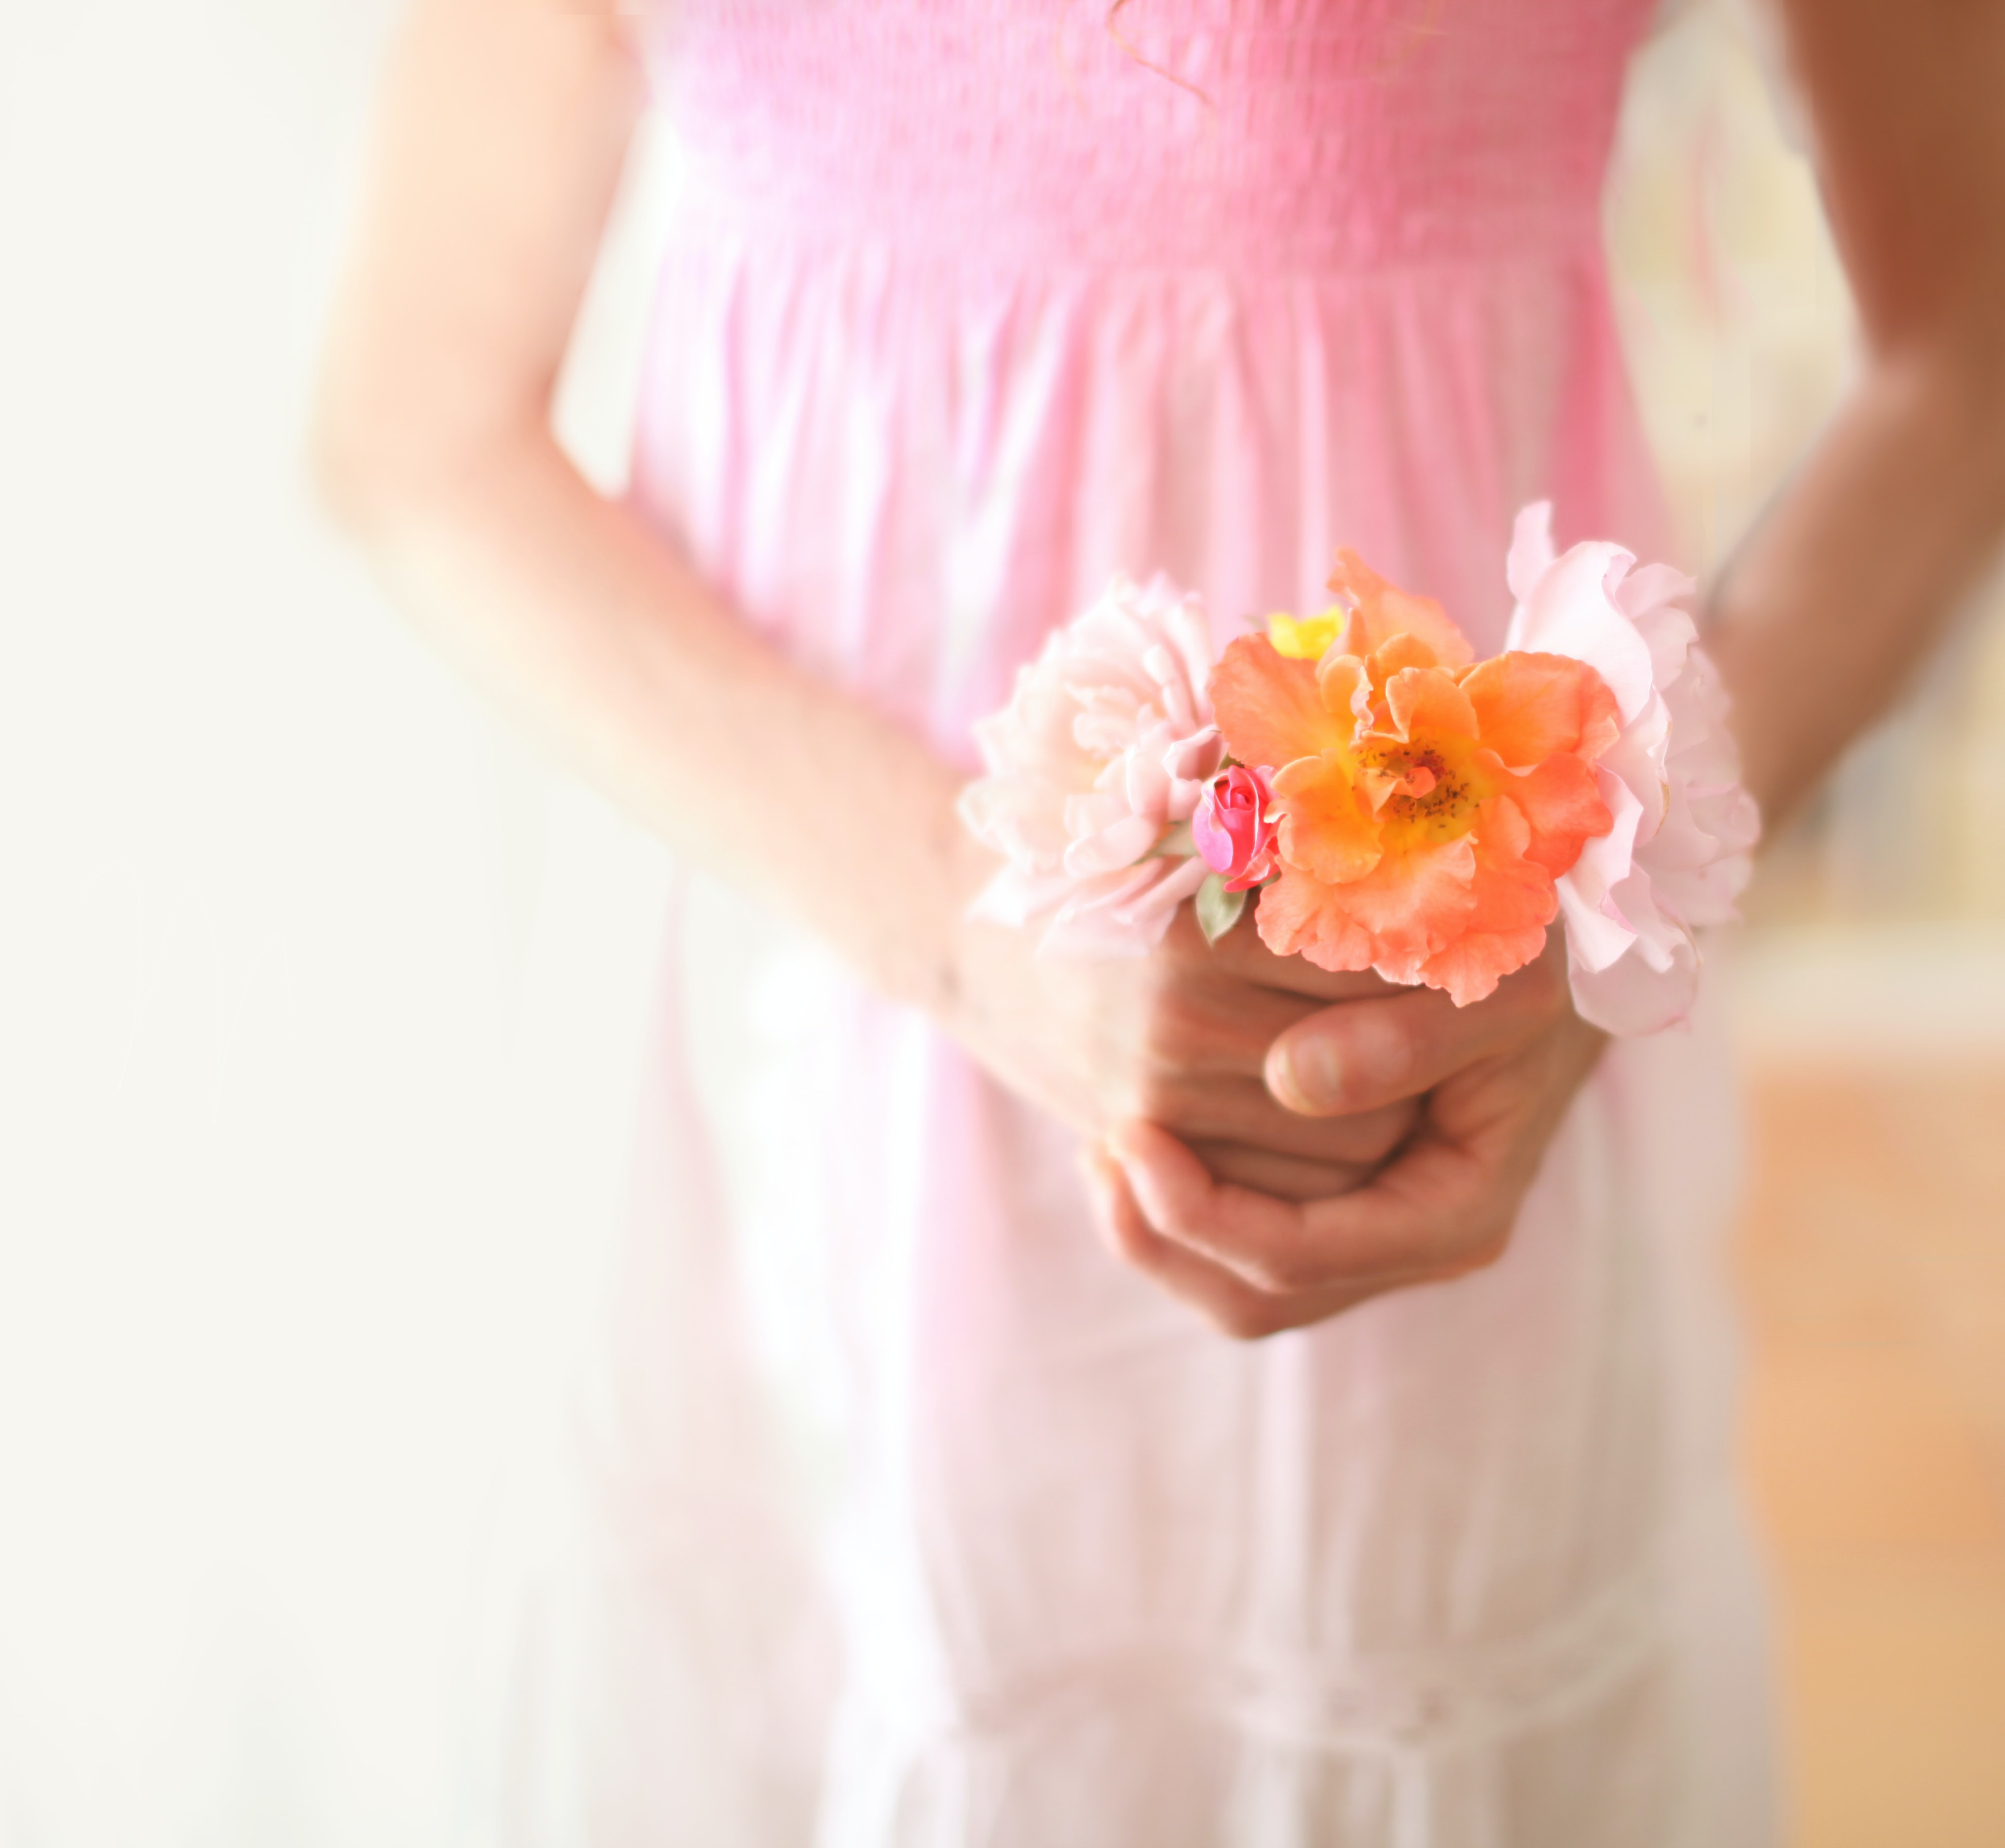 A girl holding a bouquet of white, pink and orange flowers in front of her dress